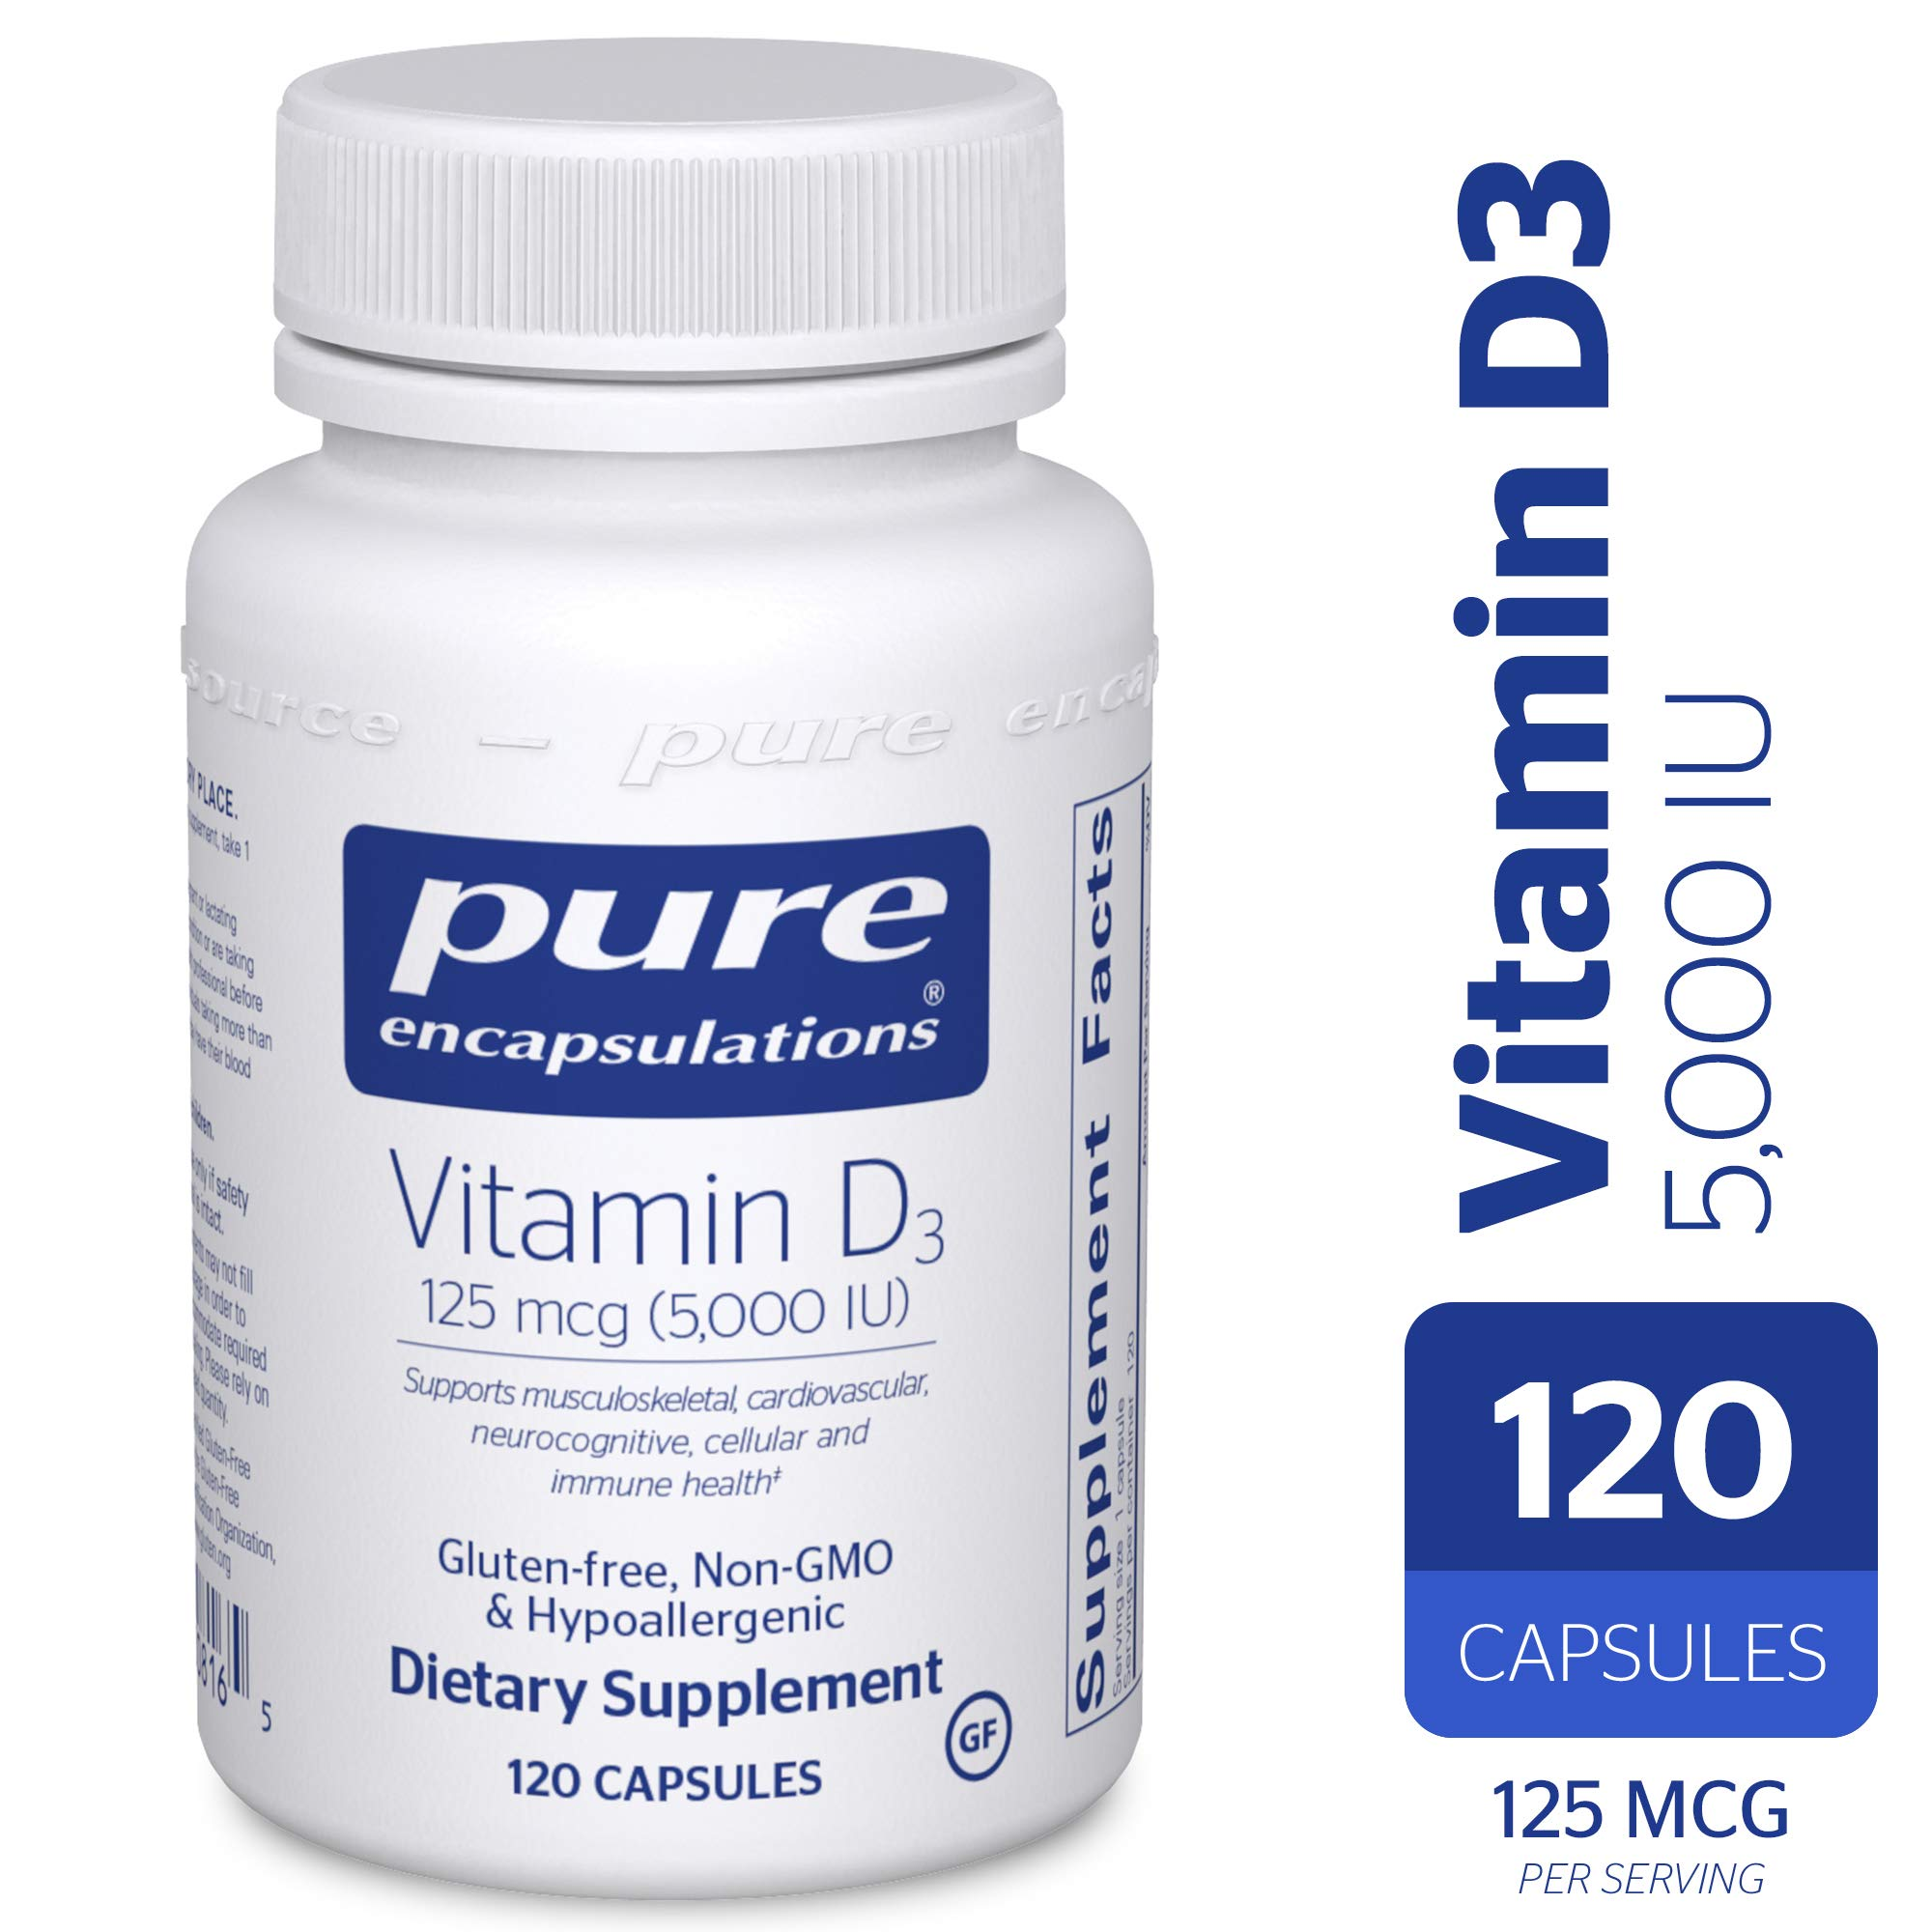 Pure Encapsulations - Vitamin D3 125 mcg (5,000 IU) - Hypoallergenic Support for Bone, Breast, Prostate, Cardiovascular, Colon and Immune Health* - 120 Capsules by Pure Encapsulations